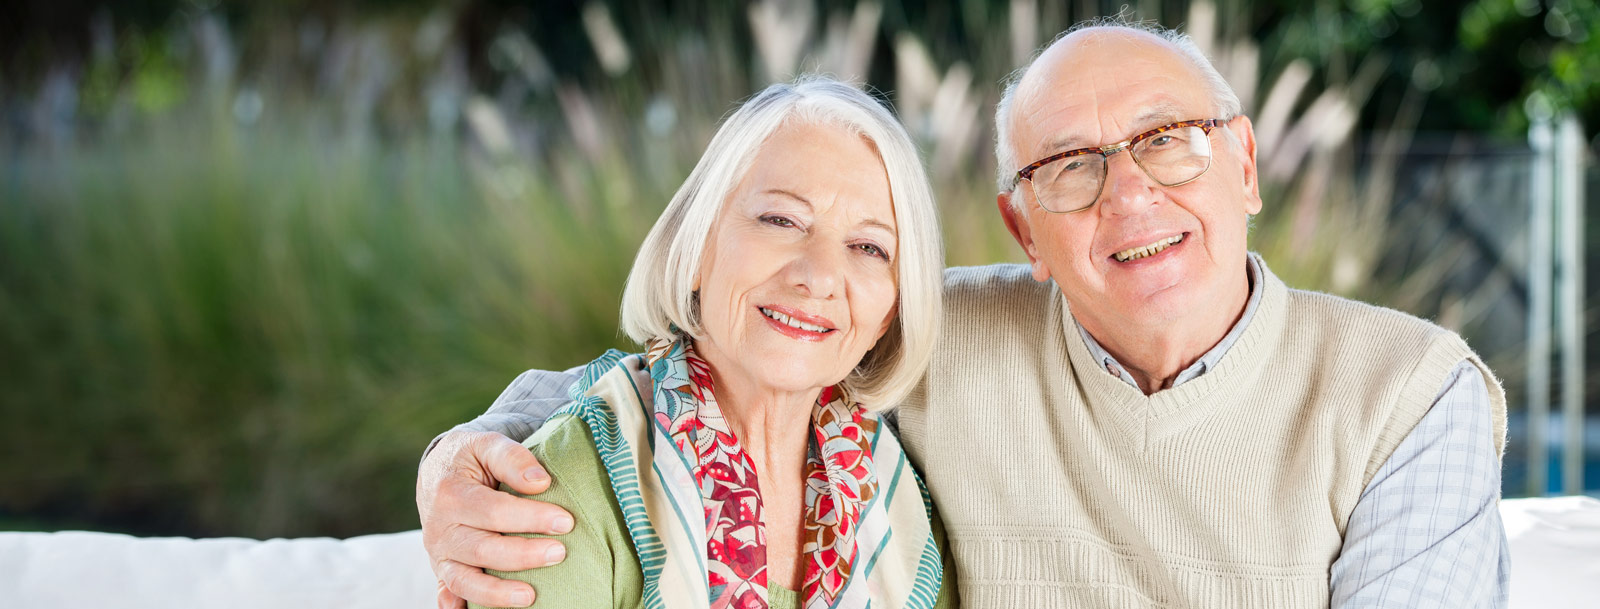 Helpful resources for the senior living facility in Olathe